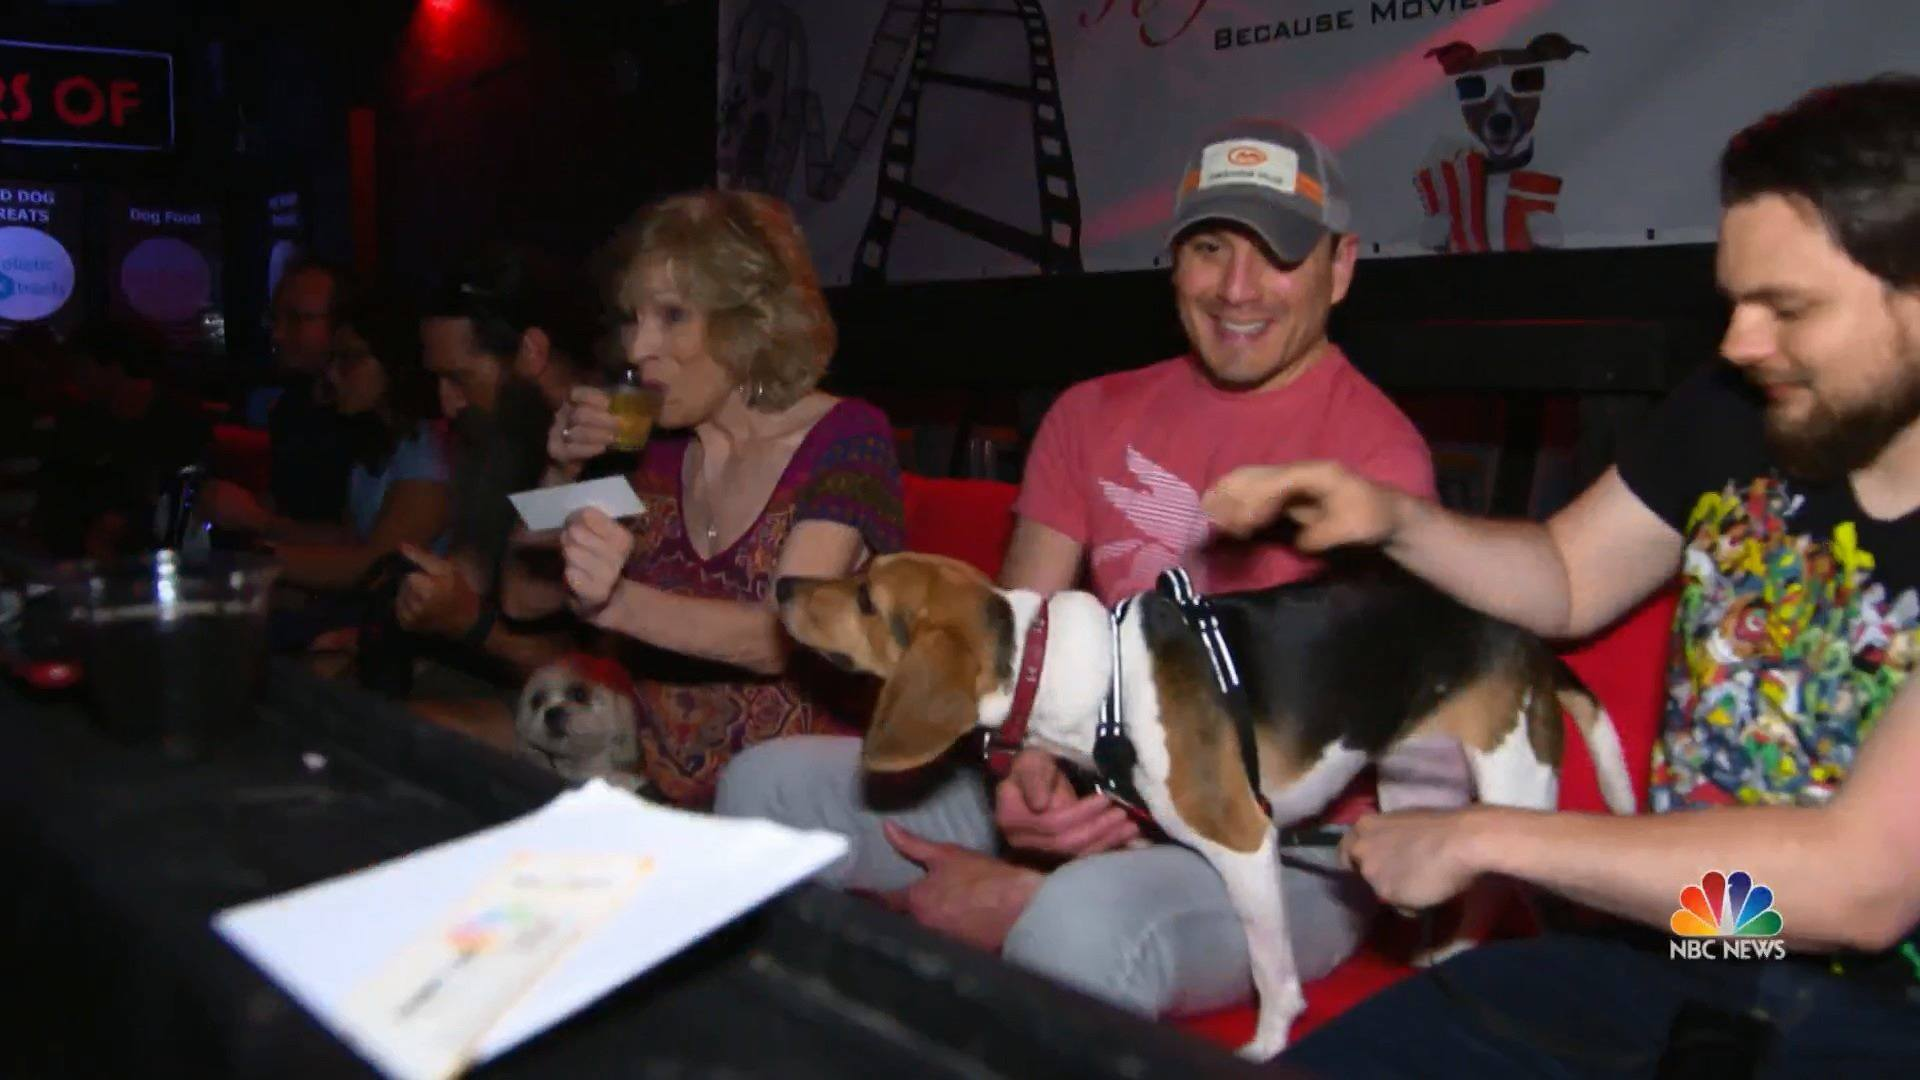 Dogs and humans welcome at this unique Texas movie theater